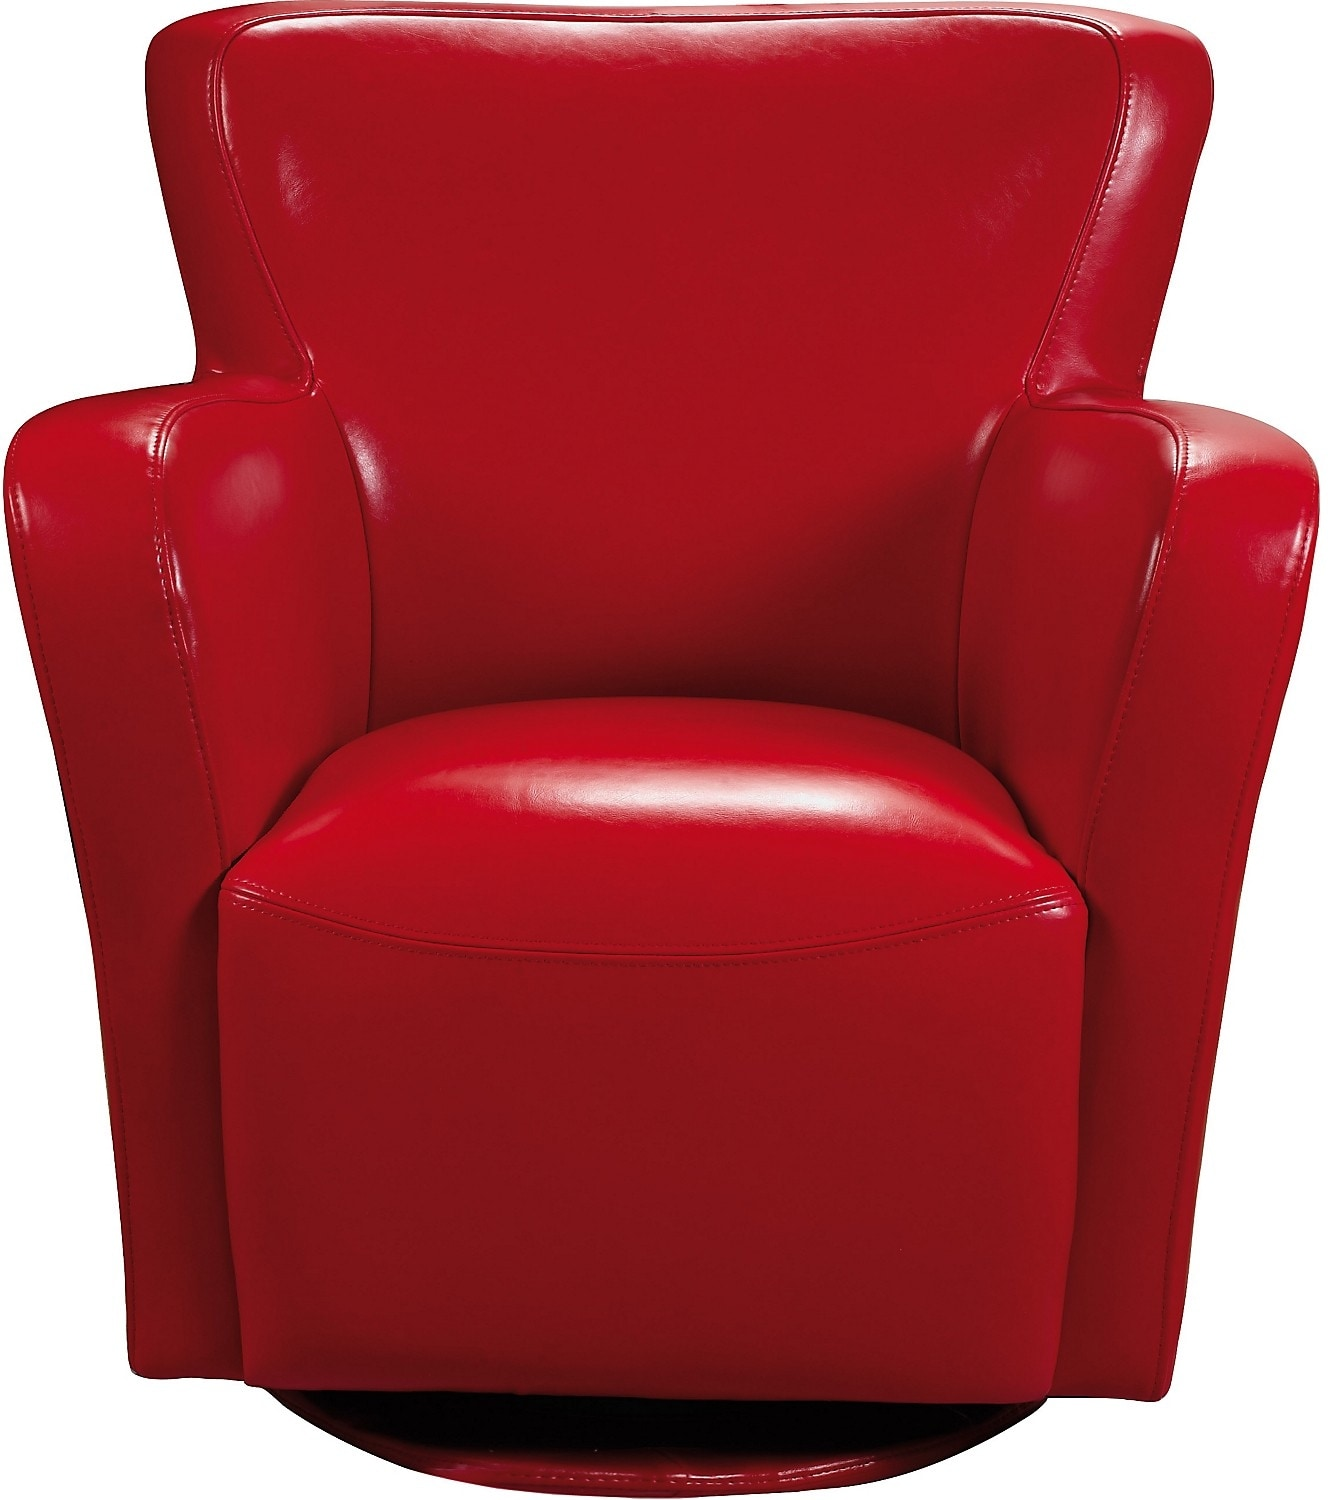 Bonded Leather Swivel Chair - Red